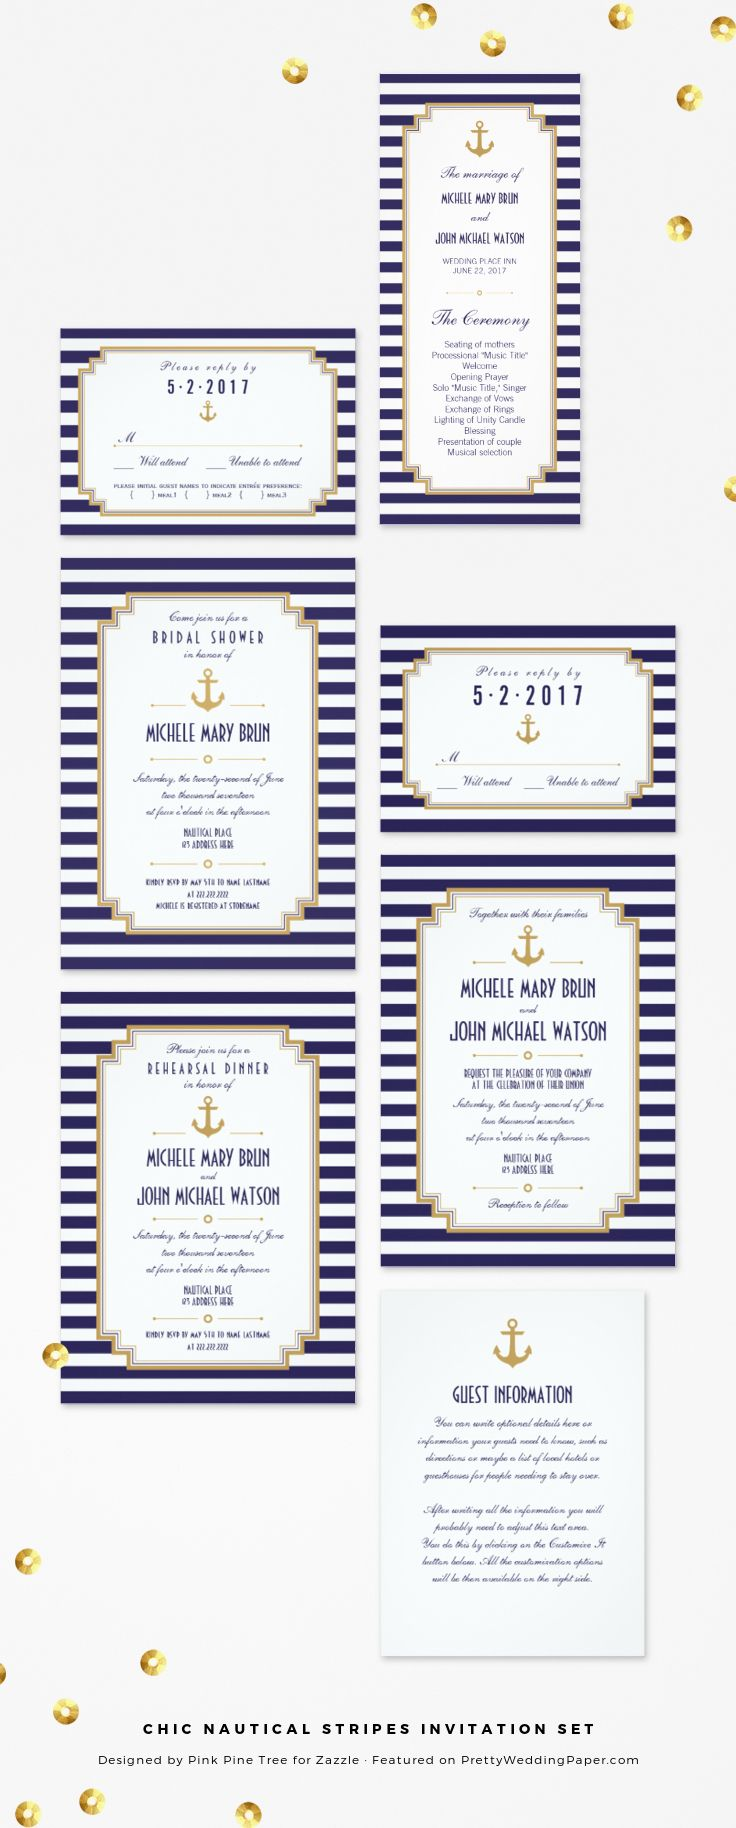 191 Best Nautical Wedding Ideas Images On Pinterest Nautical